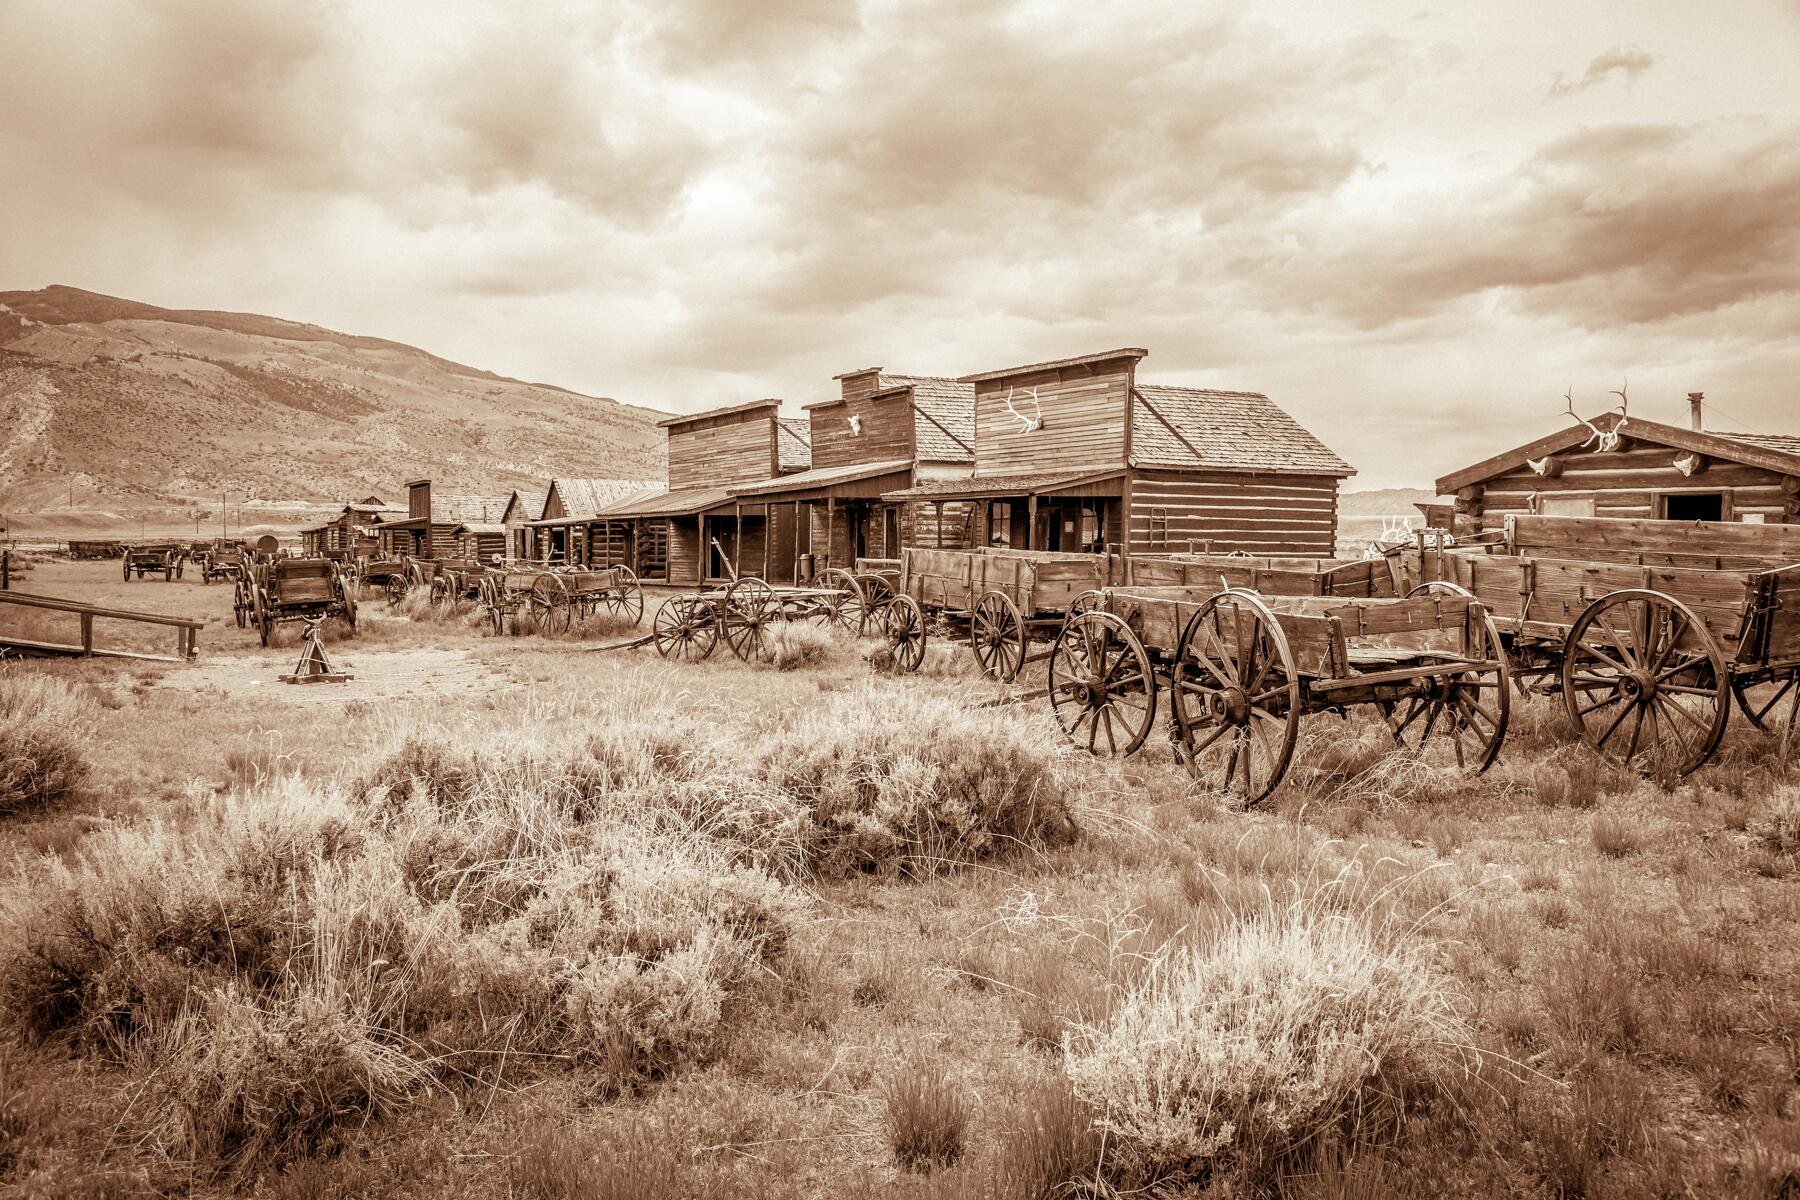 Best Old Wild Wild West Towns in the United States